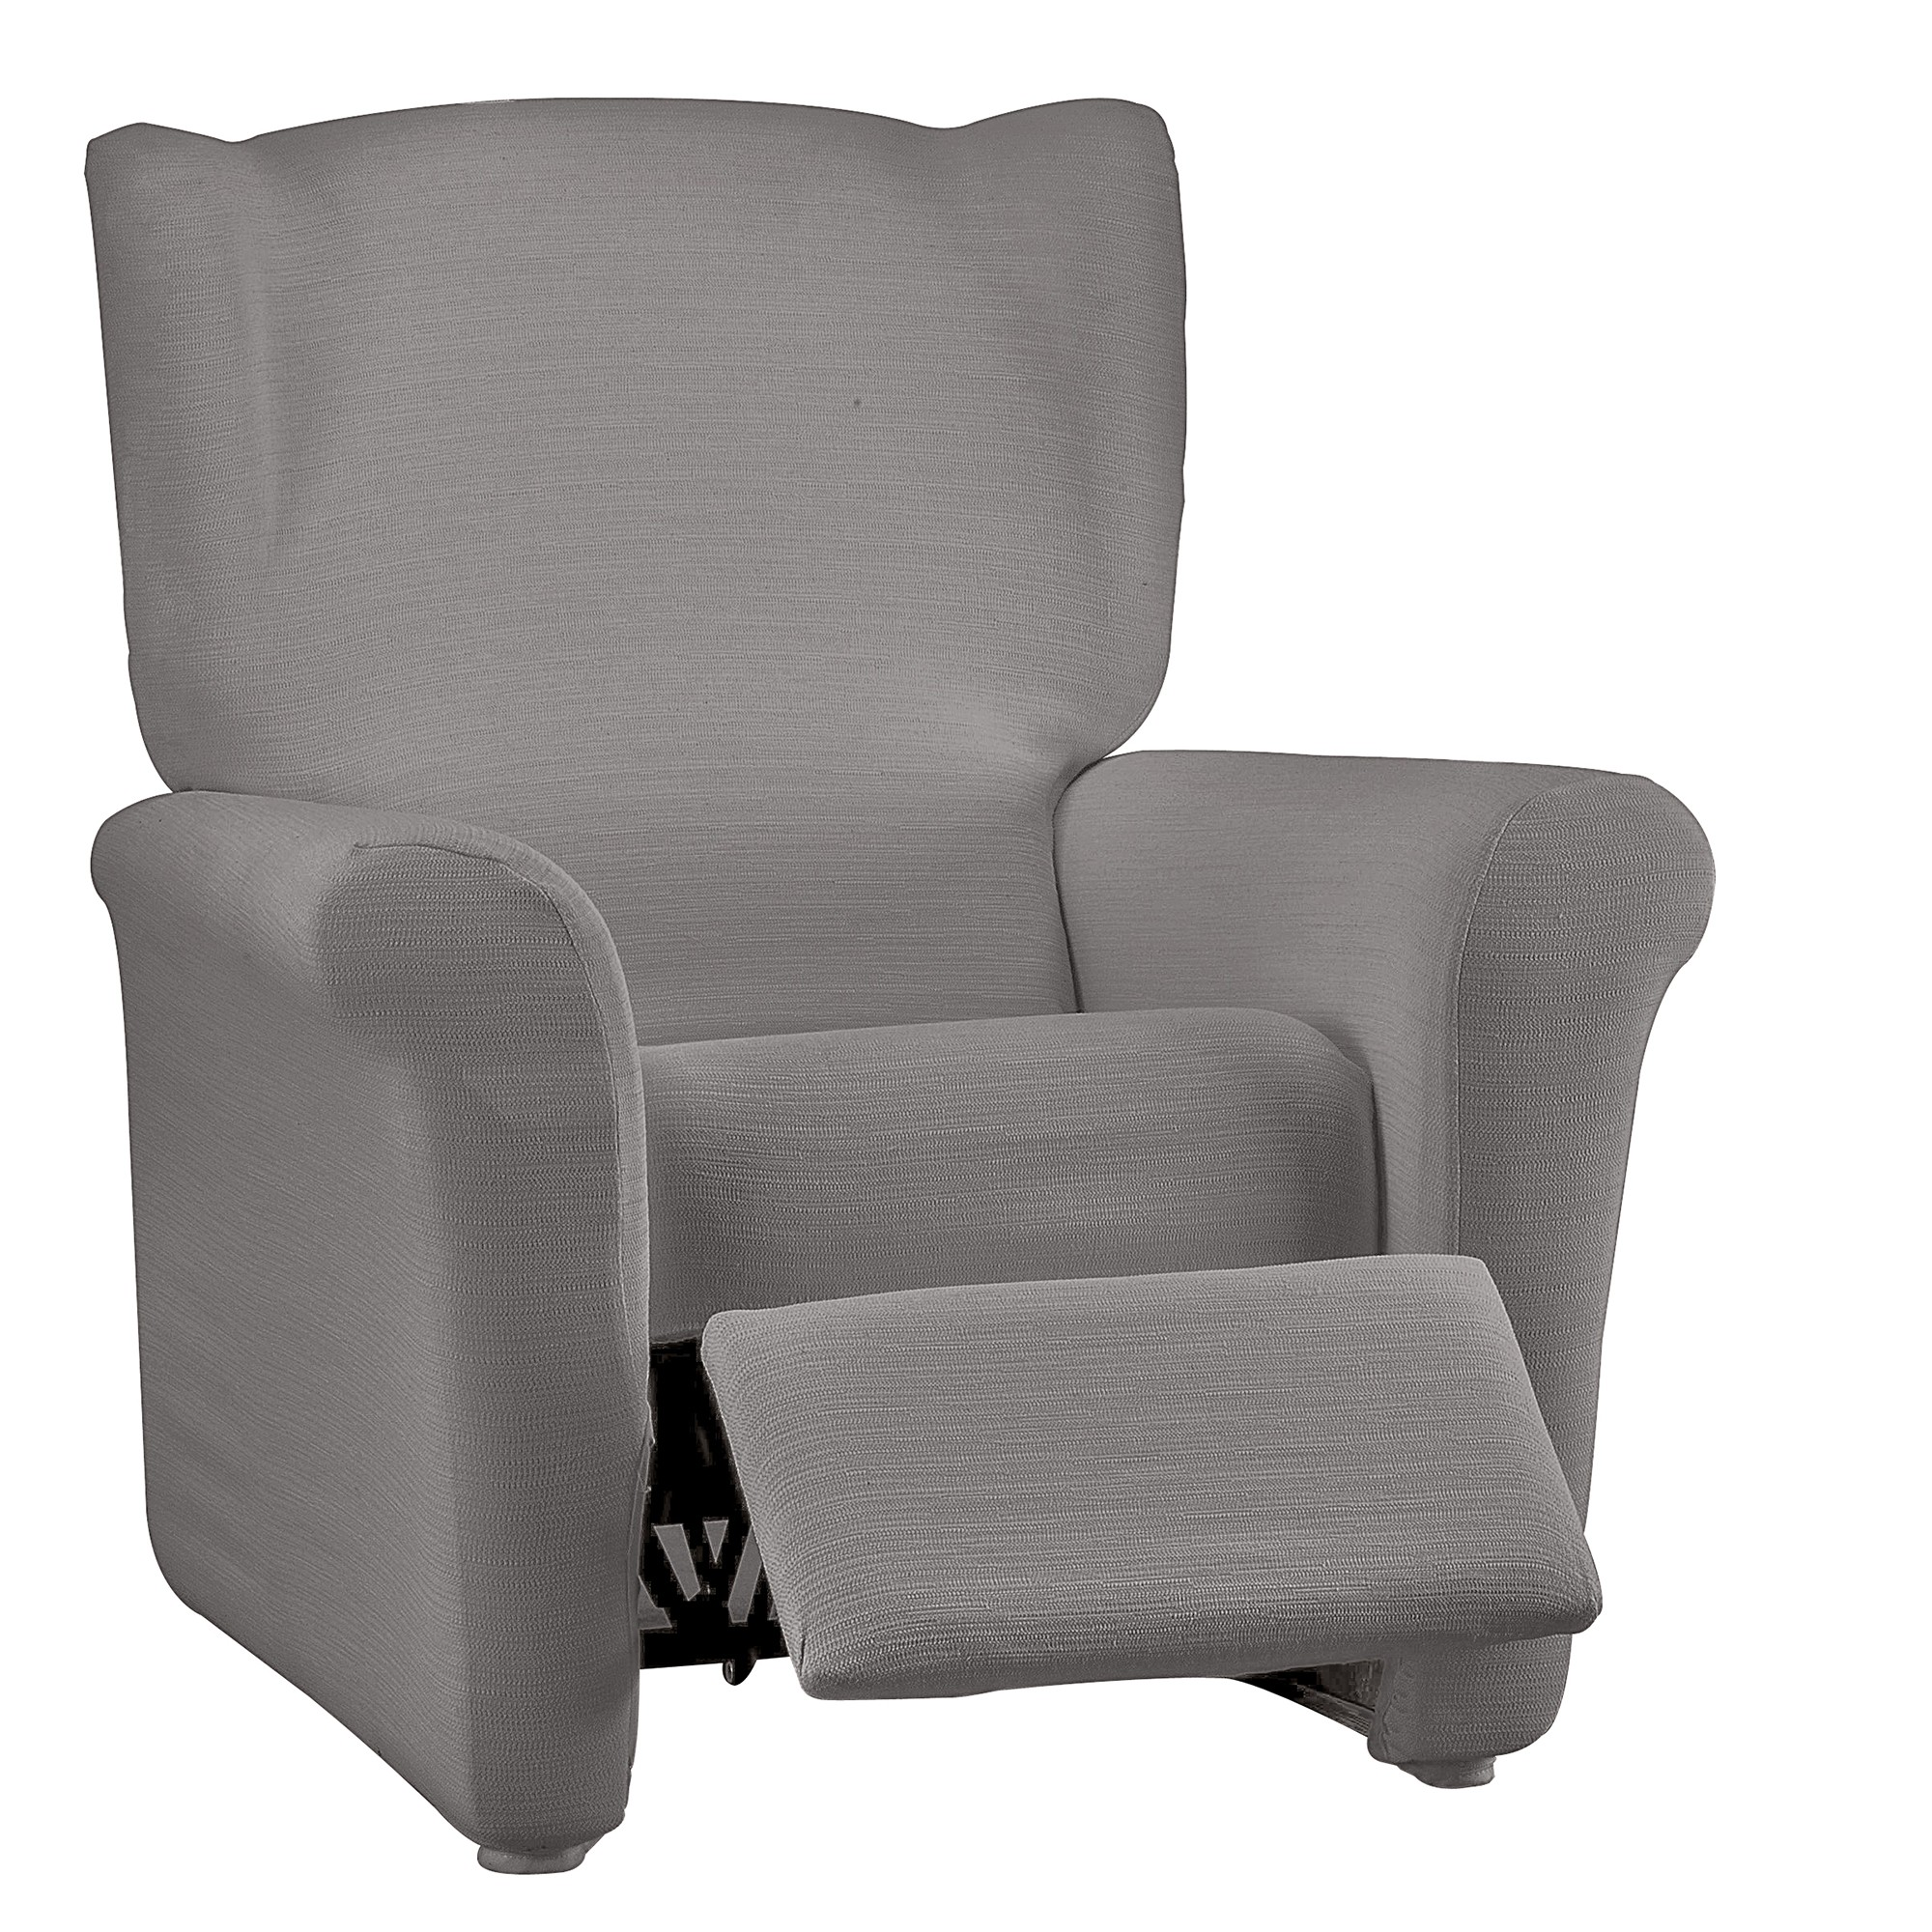 Housse extensible fauteuil relaxation Blancheporte